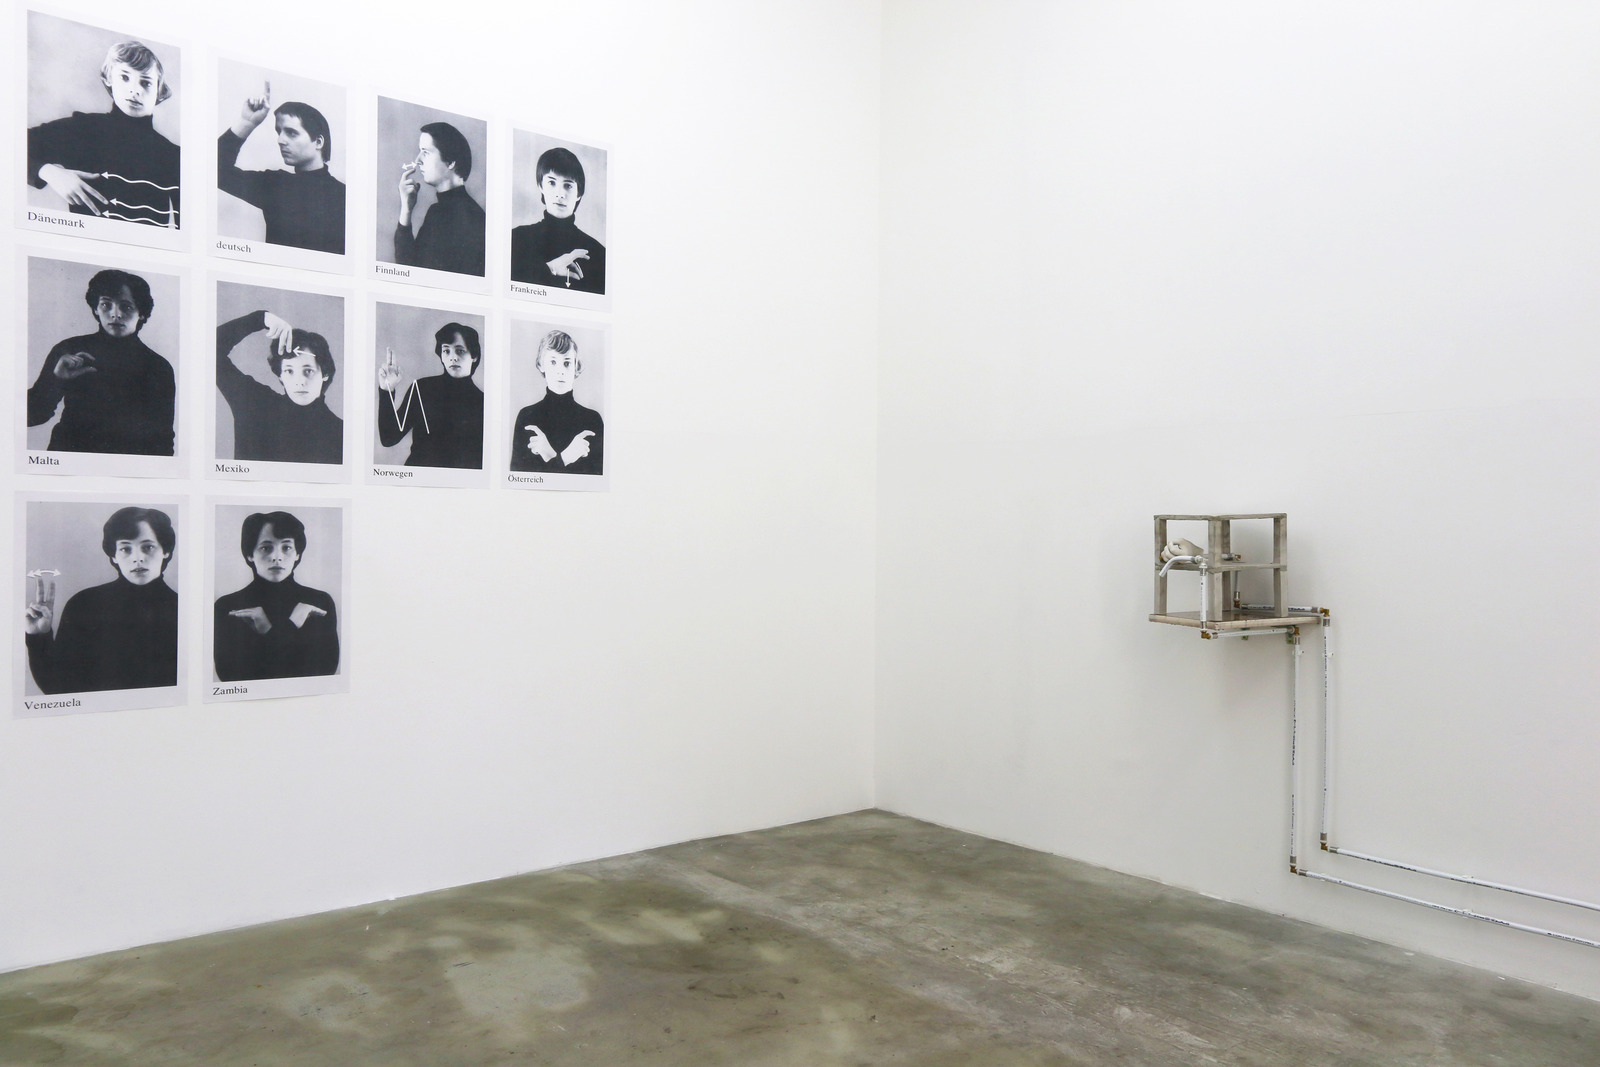 8-soy-capitan-the_order_of_things-installation view-2